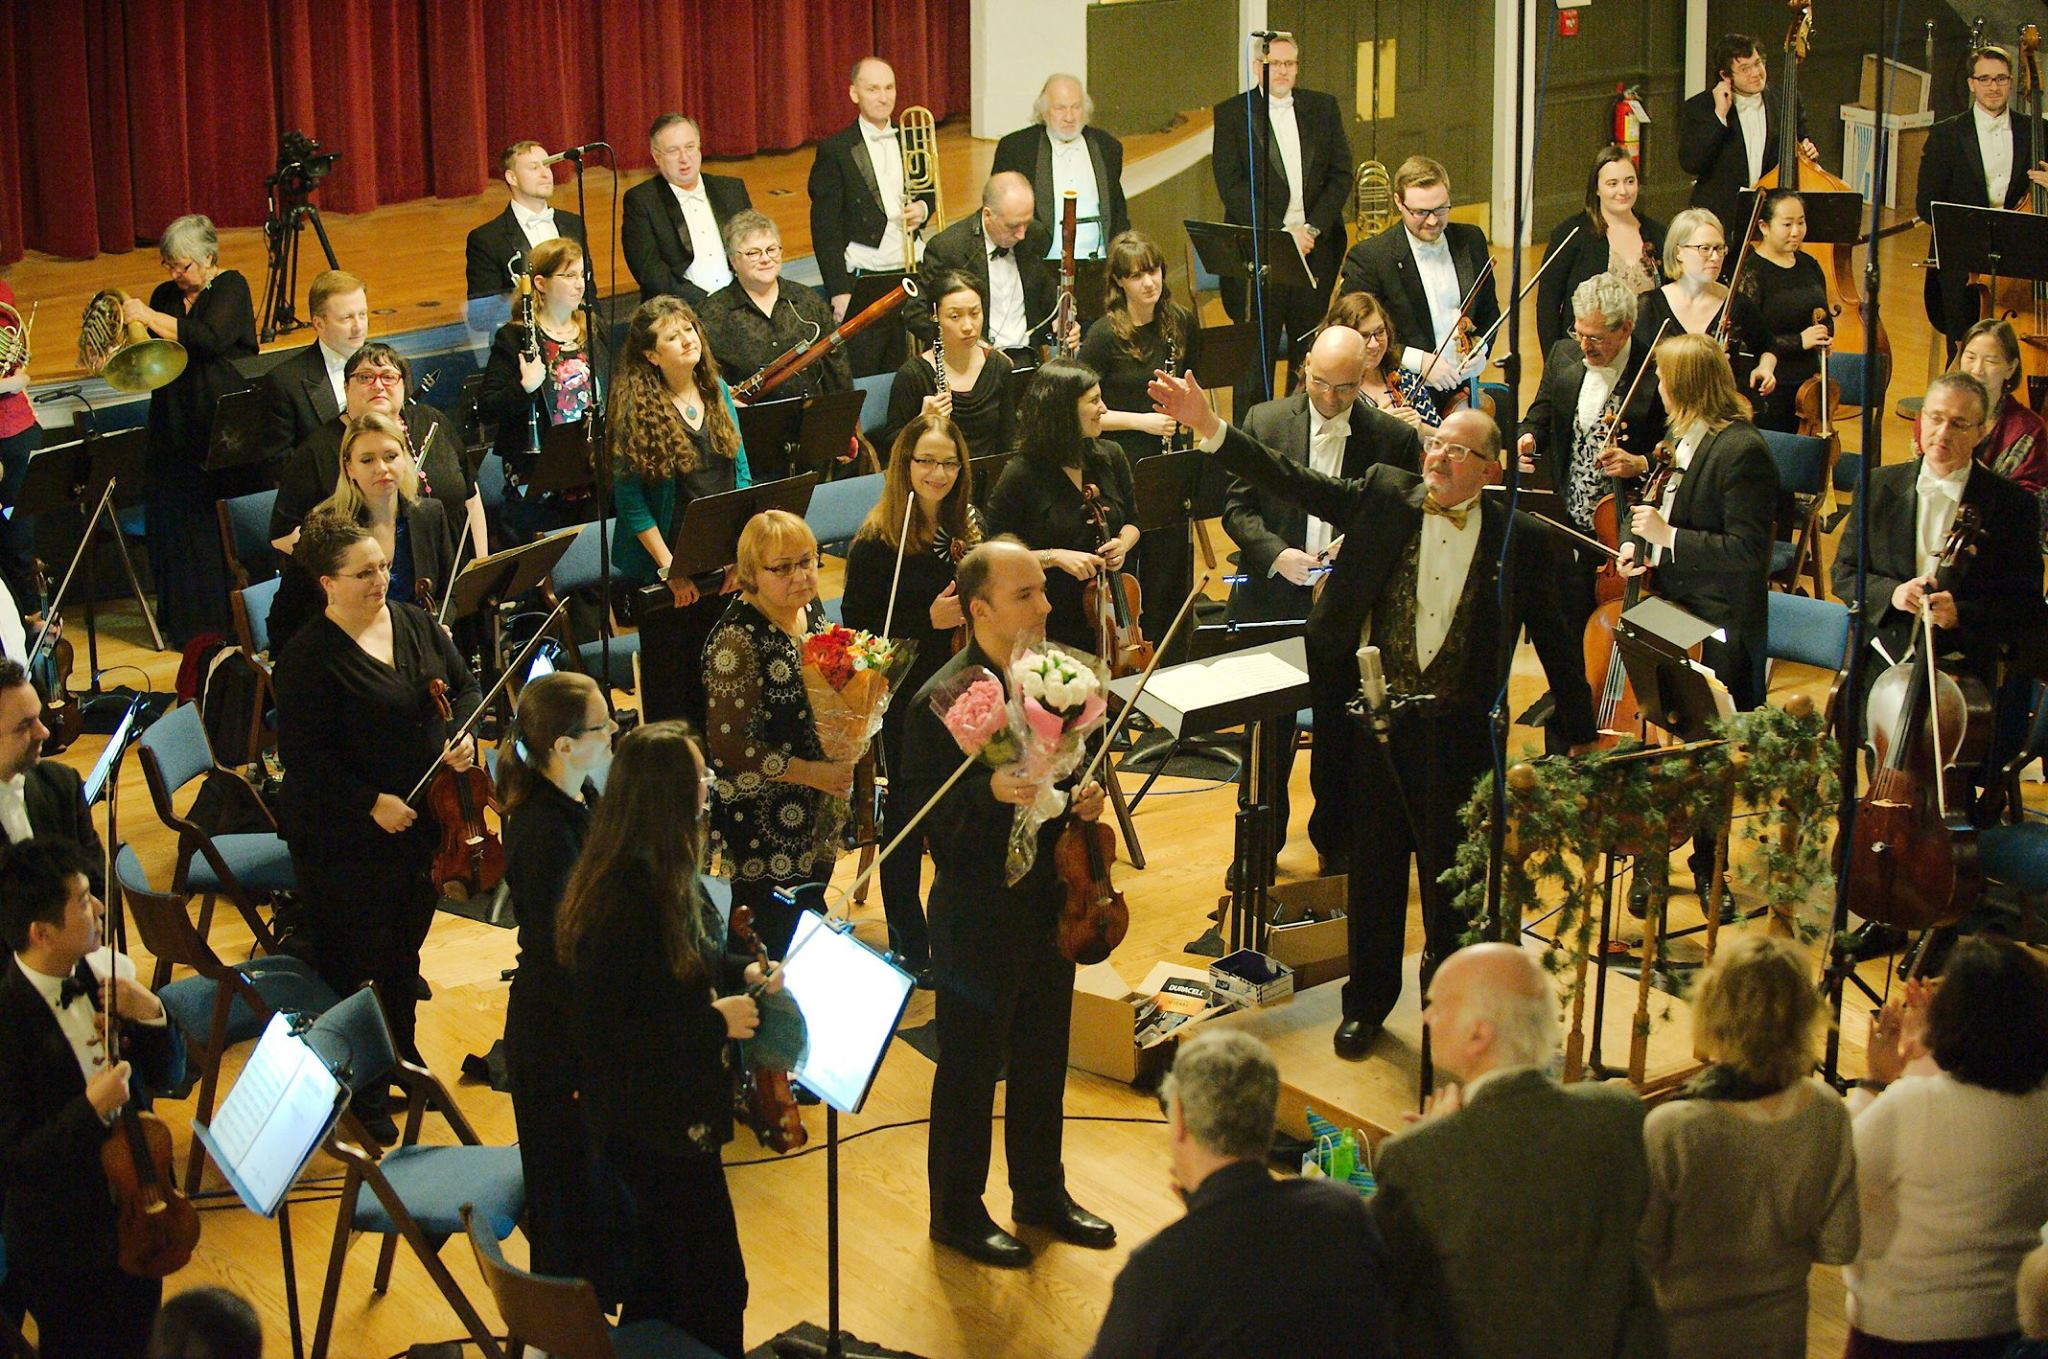 Angel Valchinov, violin soloist, with The Claflin Hill Symphony Orchestra on Saturday, November 10, 2018